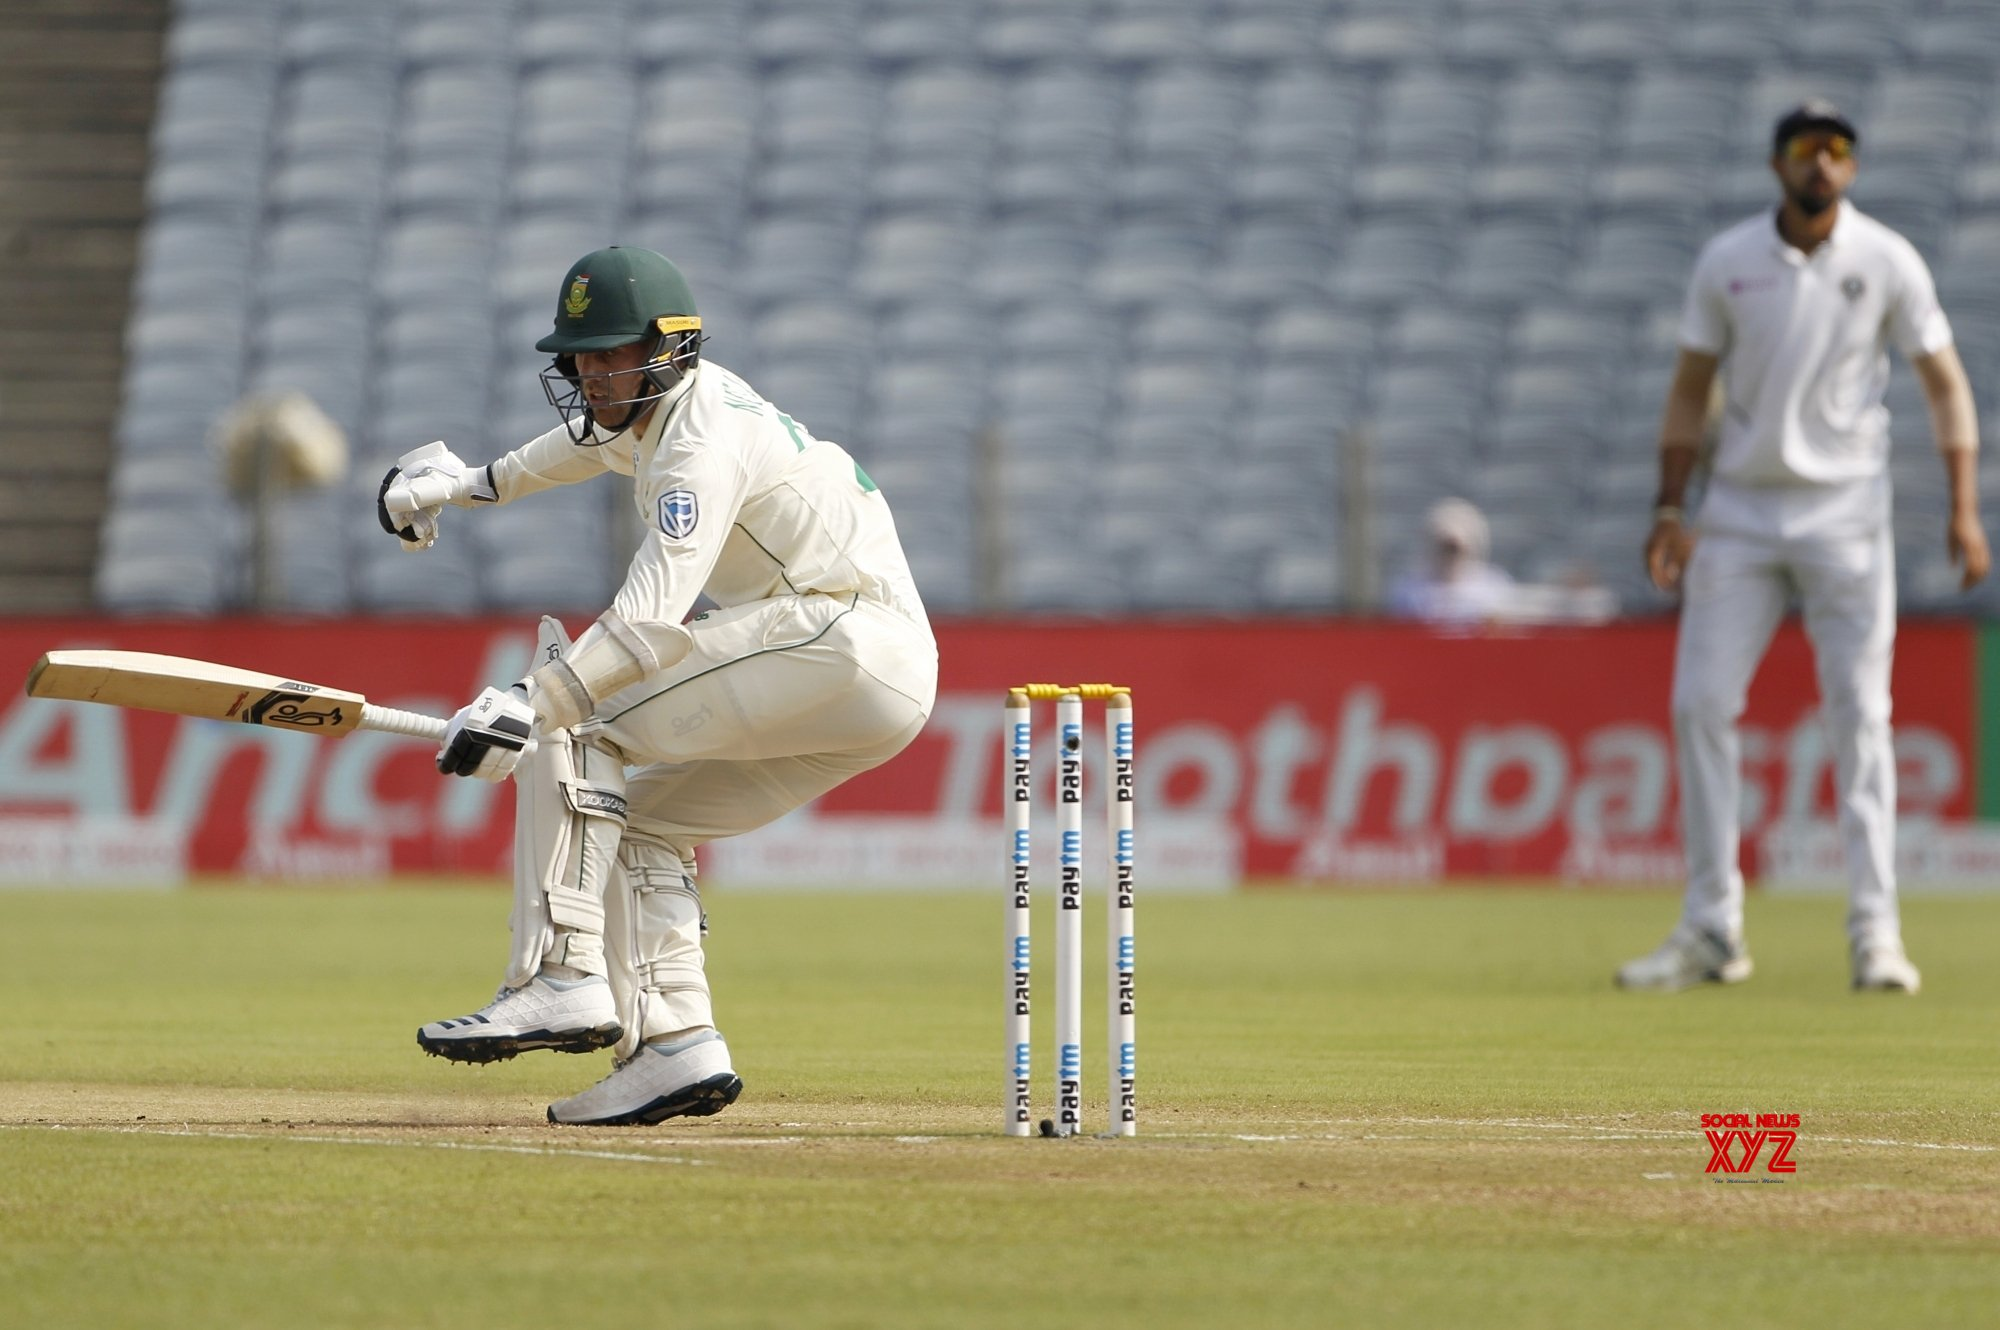 Pune: 2nd Test - India Vs South Africa - Day 3 (Batch - 1) #Gallery